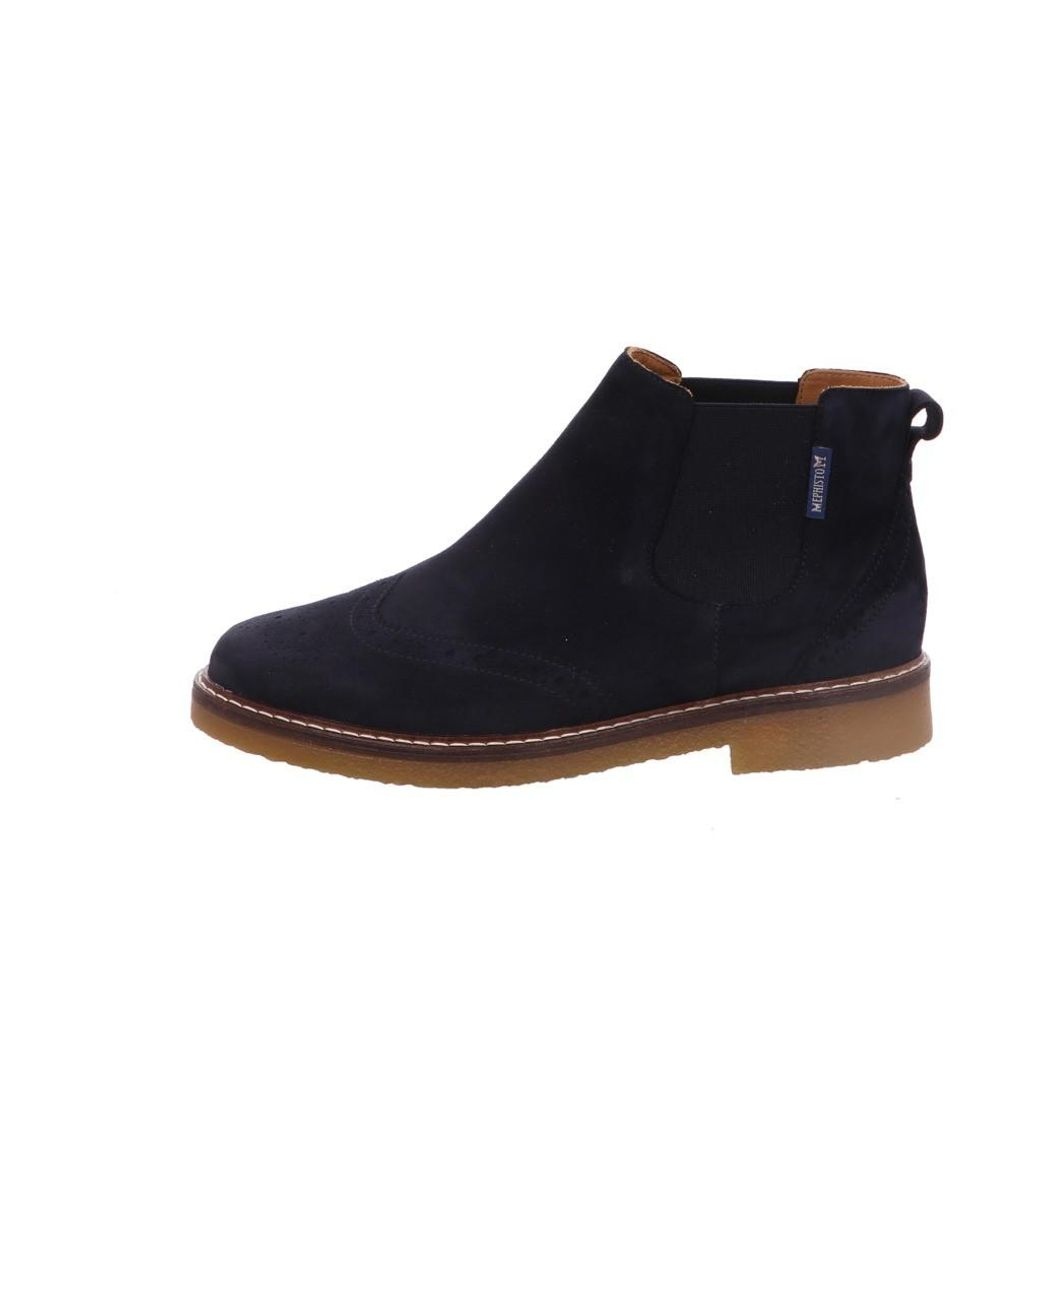 Blue Wo Stiefellette Navy Mephisto Ankle Suede Boots Yfgyb6v7